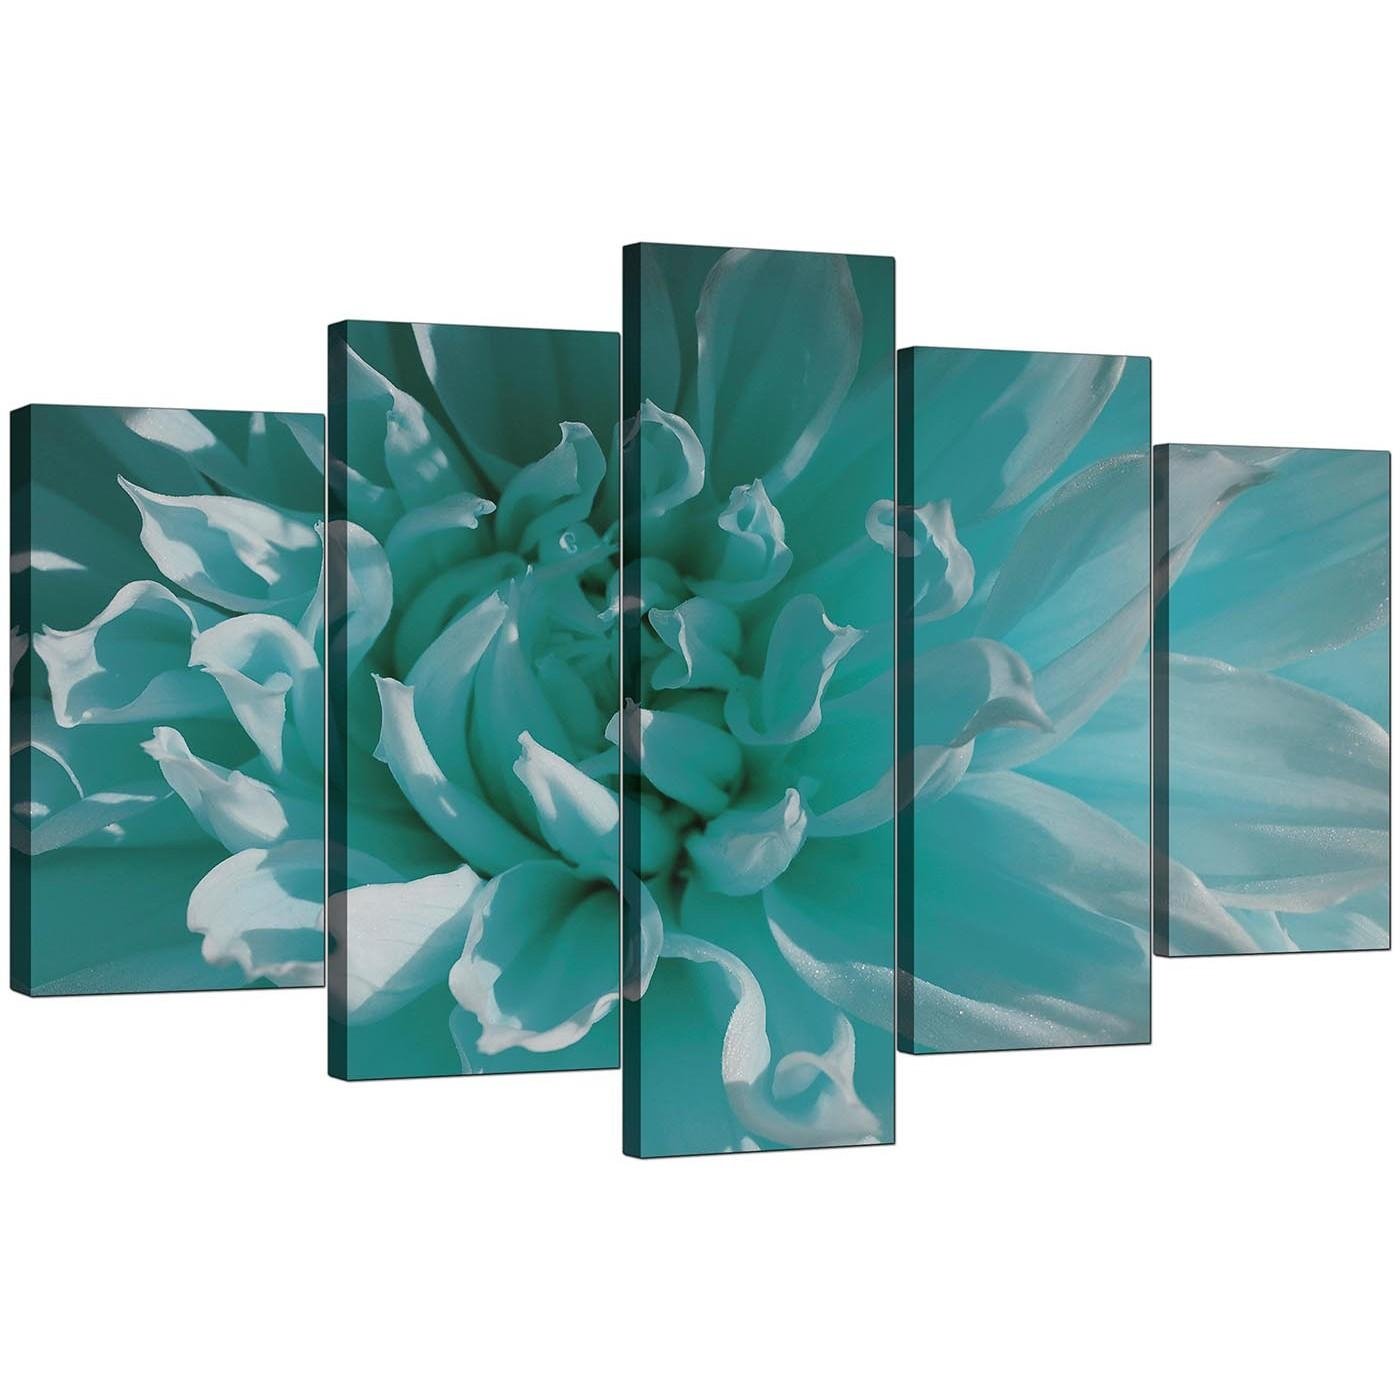 Extra Large Flower Canvas Wall Art 5 Piece In Teal Inside Teal Wall Art Uk (View 15 of 20)